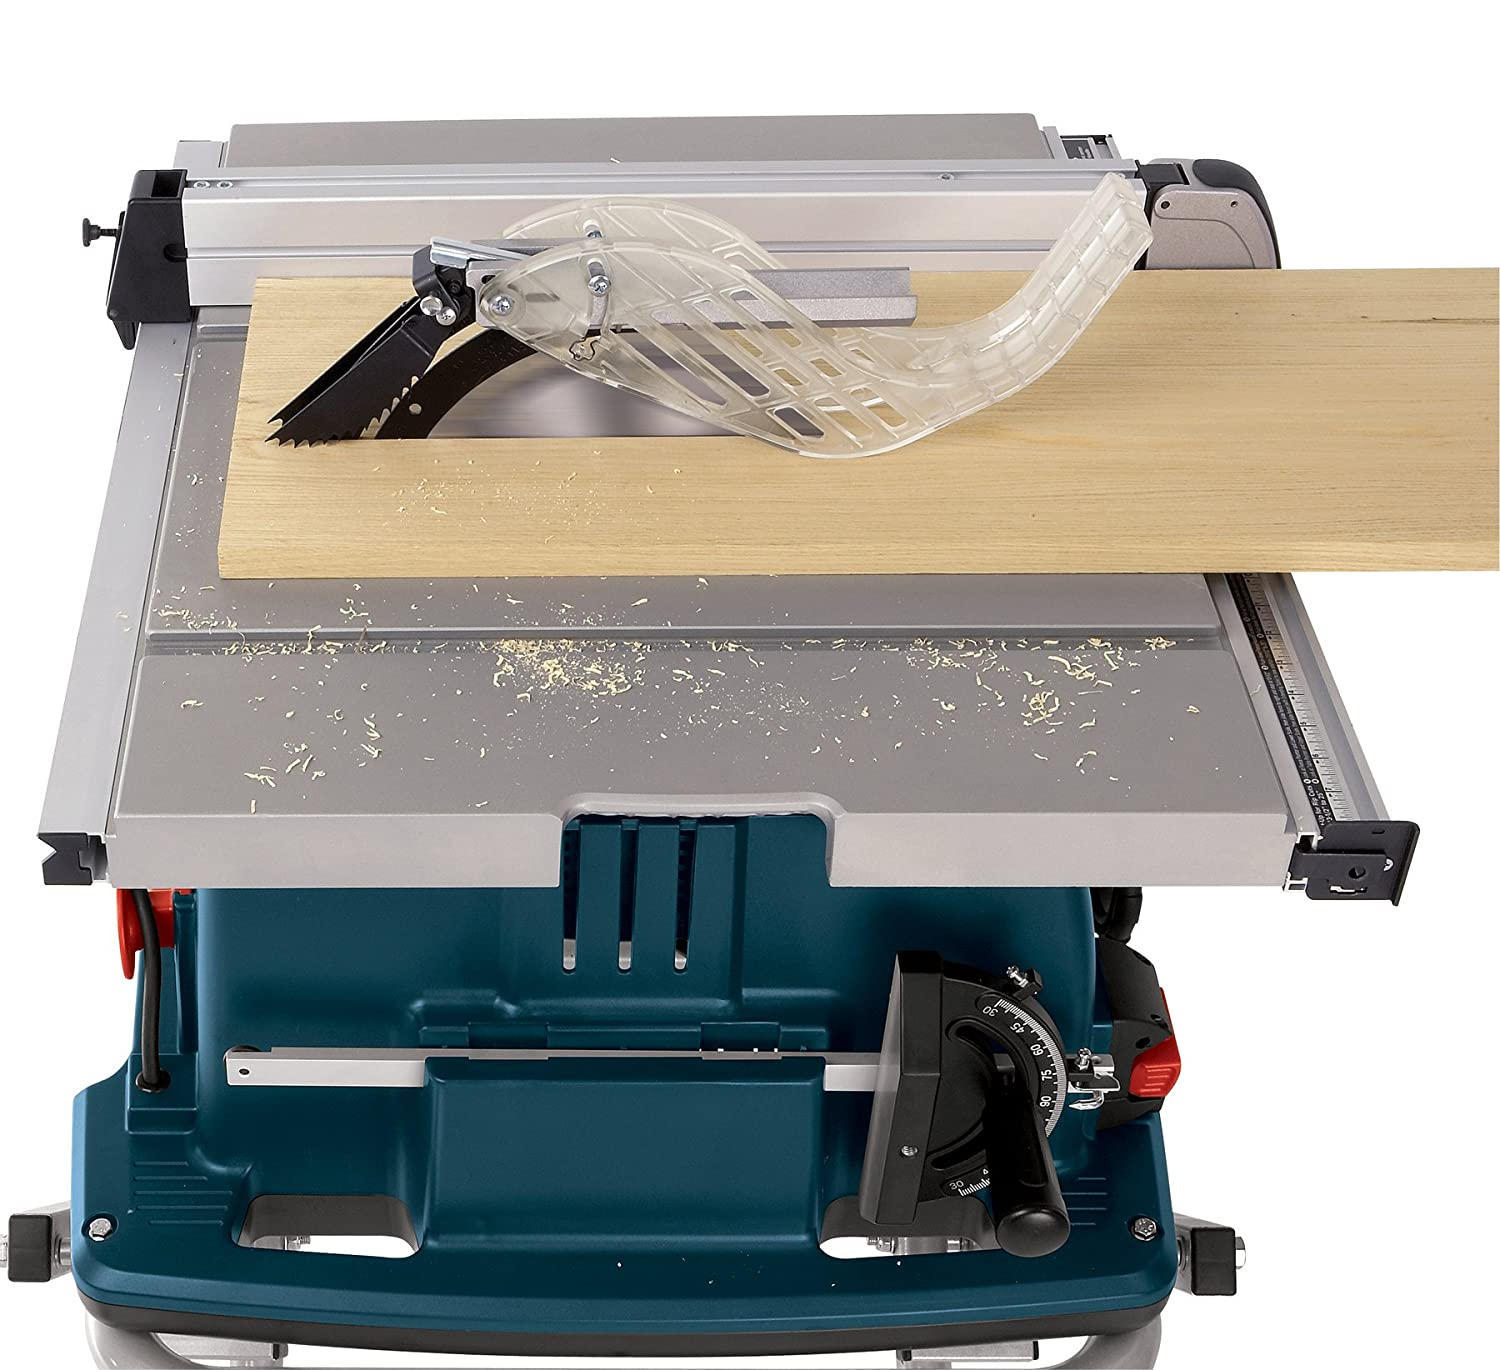 Bosch 4100 09 10 inch portable table saw review fundamentals of woodworking Bosch portable table saw